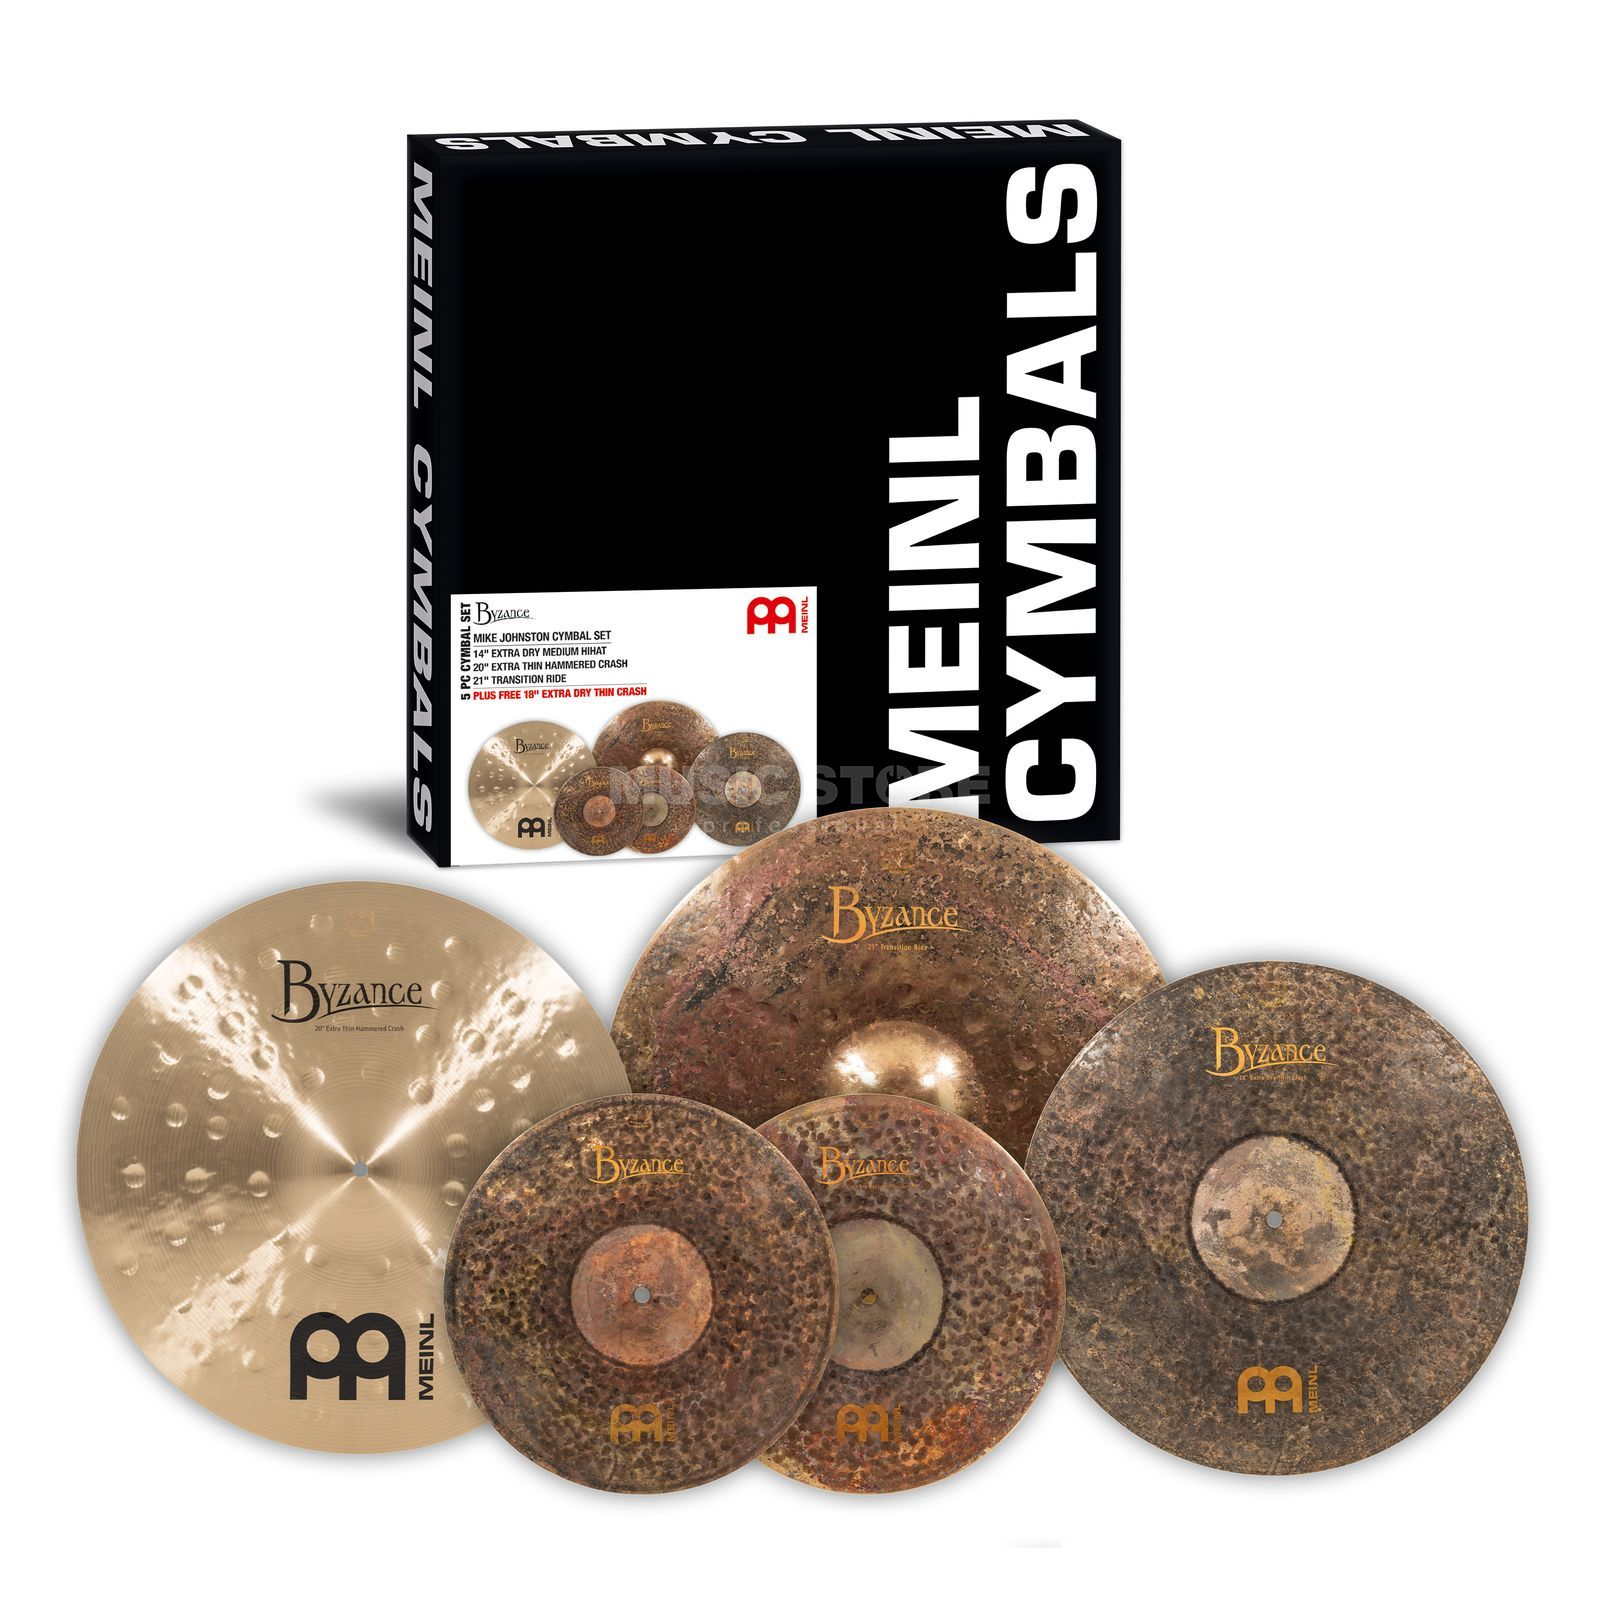 Meinl Byzance Cymbal Set MJ401+18, Mike Johnston Produktbillede